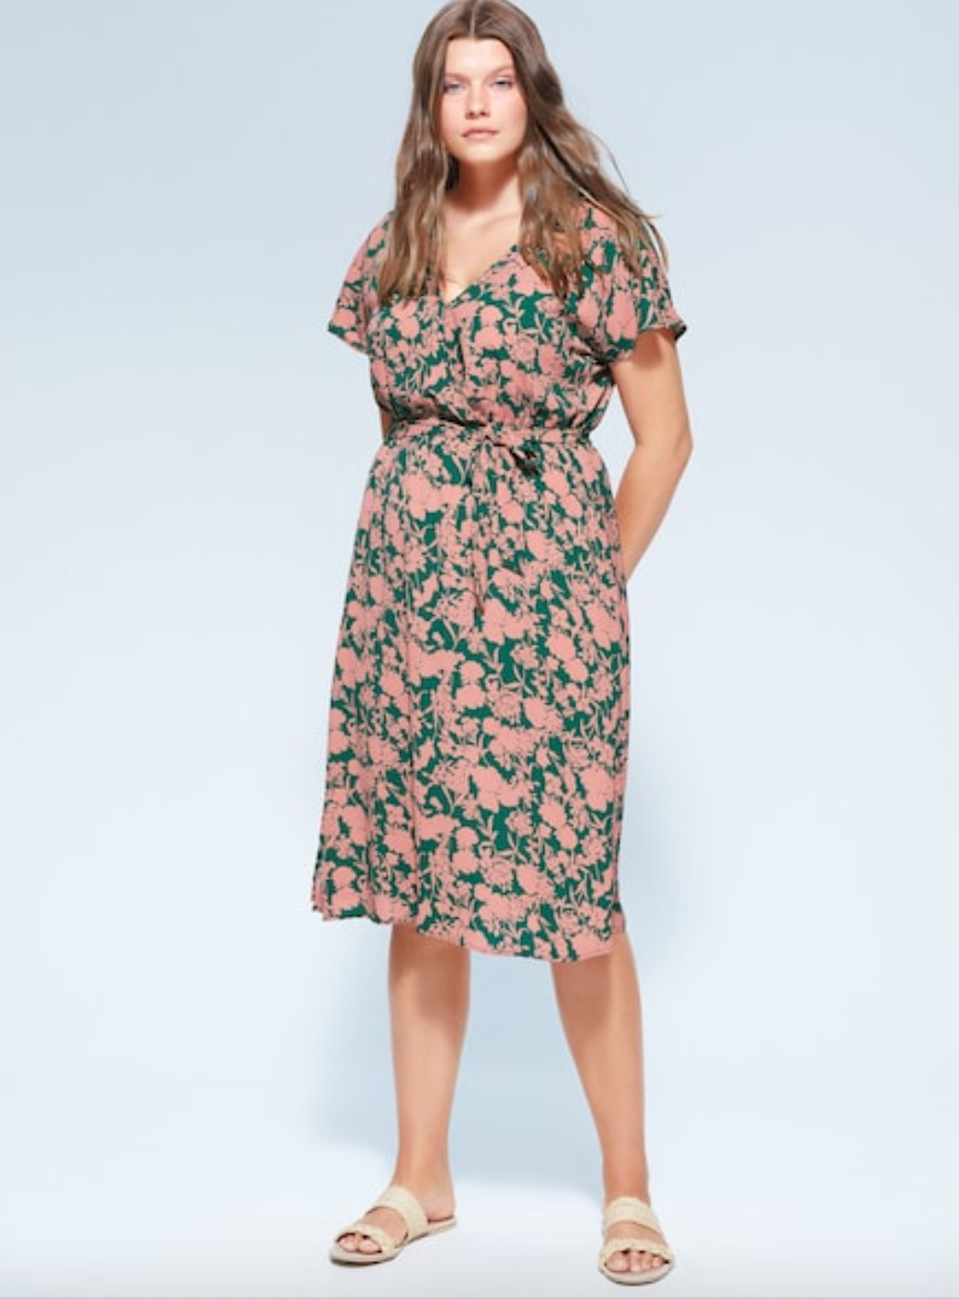 """Take <a href=""""https://shop.mango.com/us/plus-size/dresses-and-jumpsuits_c55386413?sort=desc"""" rel=""""nofollow noopener"""" target=""""_blank"""" data-ylk=""""slk:30% off everything"""" class=""""link rapid-noclick-resp"""">30% off everything</a> this weekend at Mango. <br> <br> <strong>Violeta By Mango</strong> Belt Printed Dress, $, available at <a href=""""https://go.skimresources.com/?id=30283X879131&url=https%3A%2F%2Fshop.mango.com%2Fus%2Fplus-size%2Fdresses-and-jumpsuits-short%2Fbelt-printed-dress_67097639.html"""" rel=""""nofollow noopener"""" target=""""_blank"""" data-ylk=""""slk:Mango"""" class=""""link rapid-noclick-resp"""">Mango</a>"""